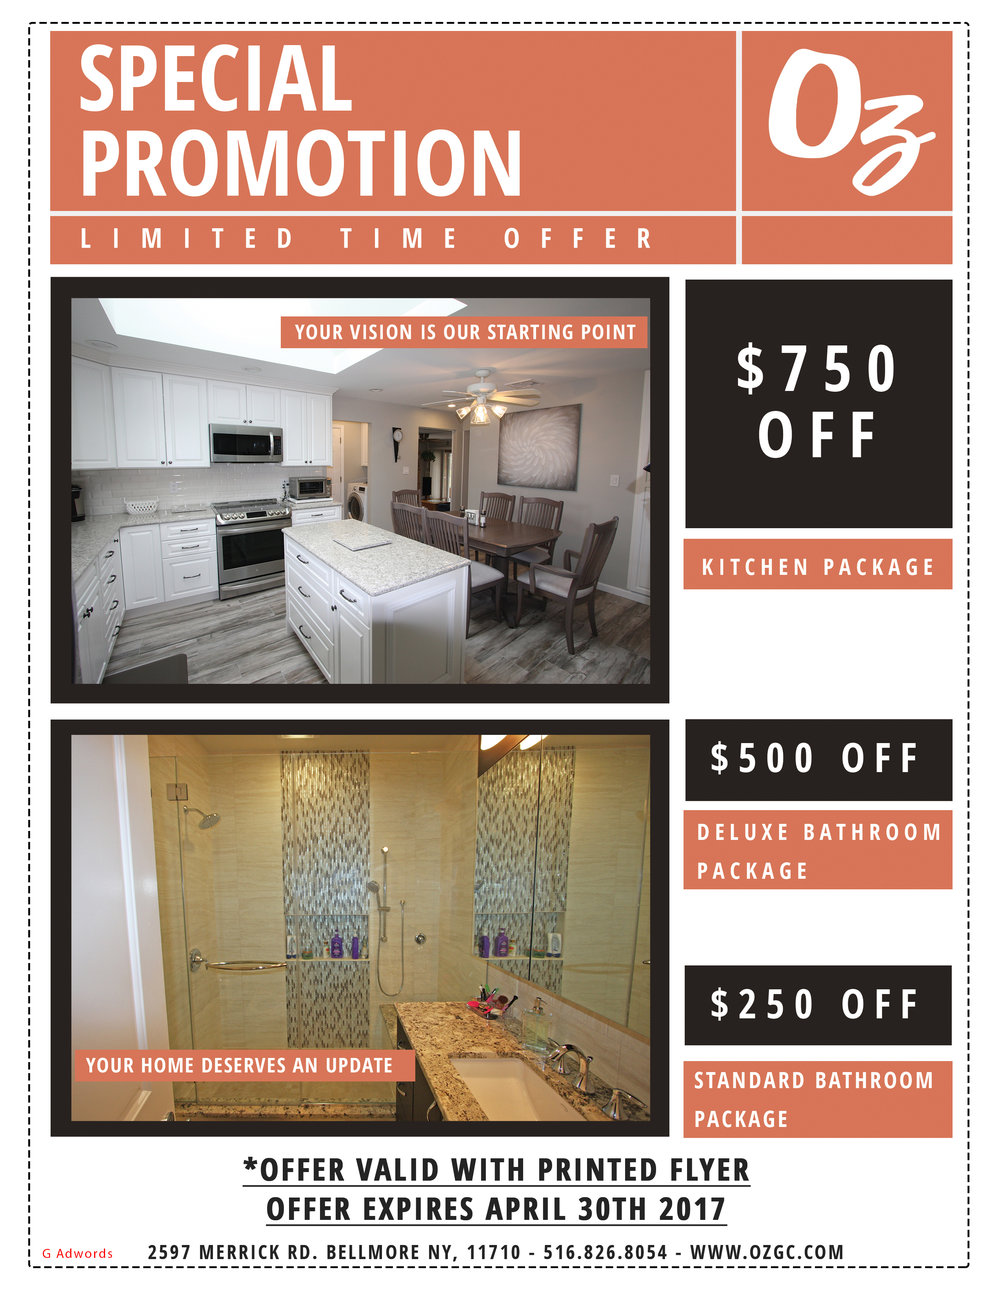 Special 2017 Promotion